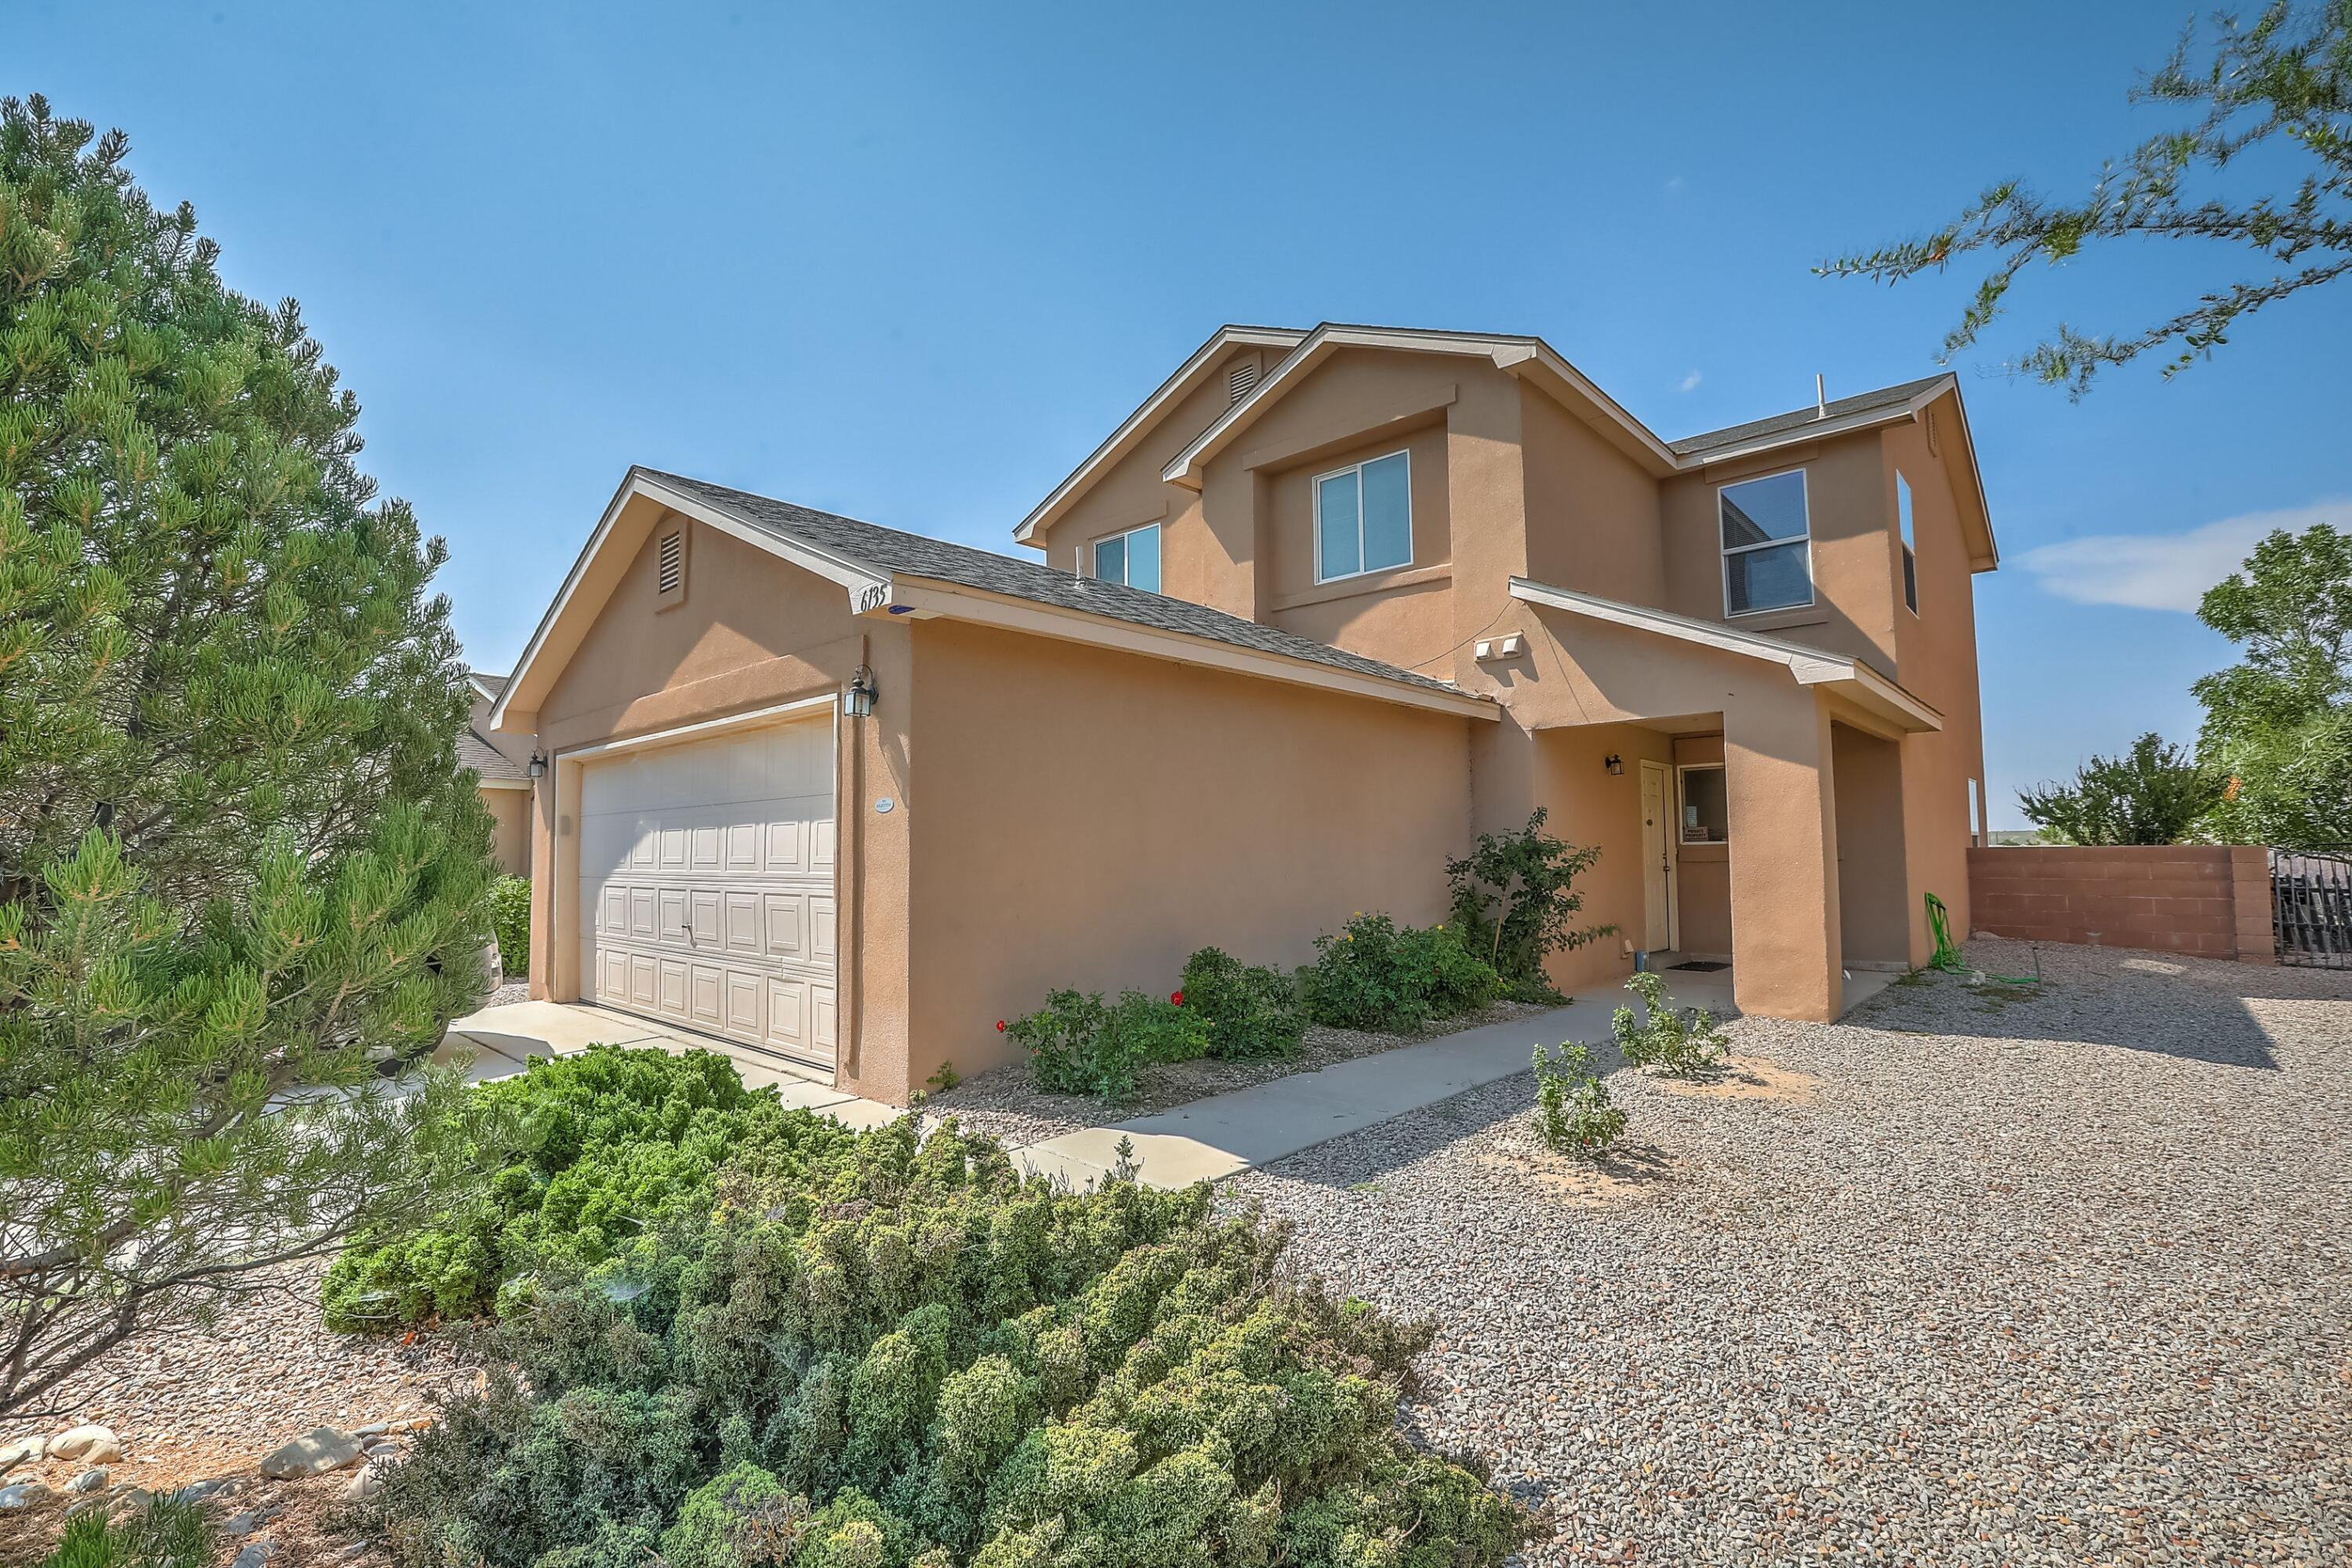 Welcome to 6135 Bisbee! Are you looking for A property that has a large backyard which is primed for entertainment, refrigerated air, as well as a free flowing kitchen and living room.... Look no further !  This property is ready for a  new family to call it home . Contact your trusted Realtor to schedule a private showing.